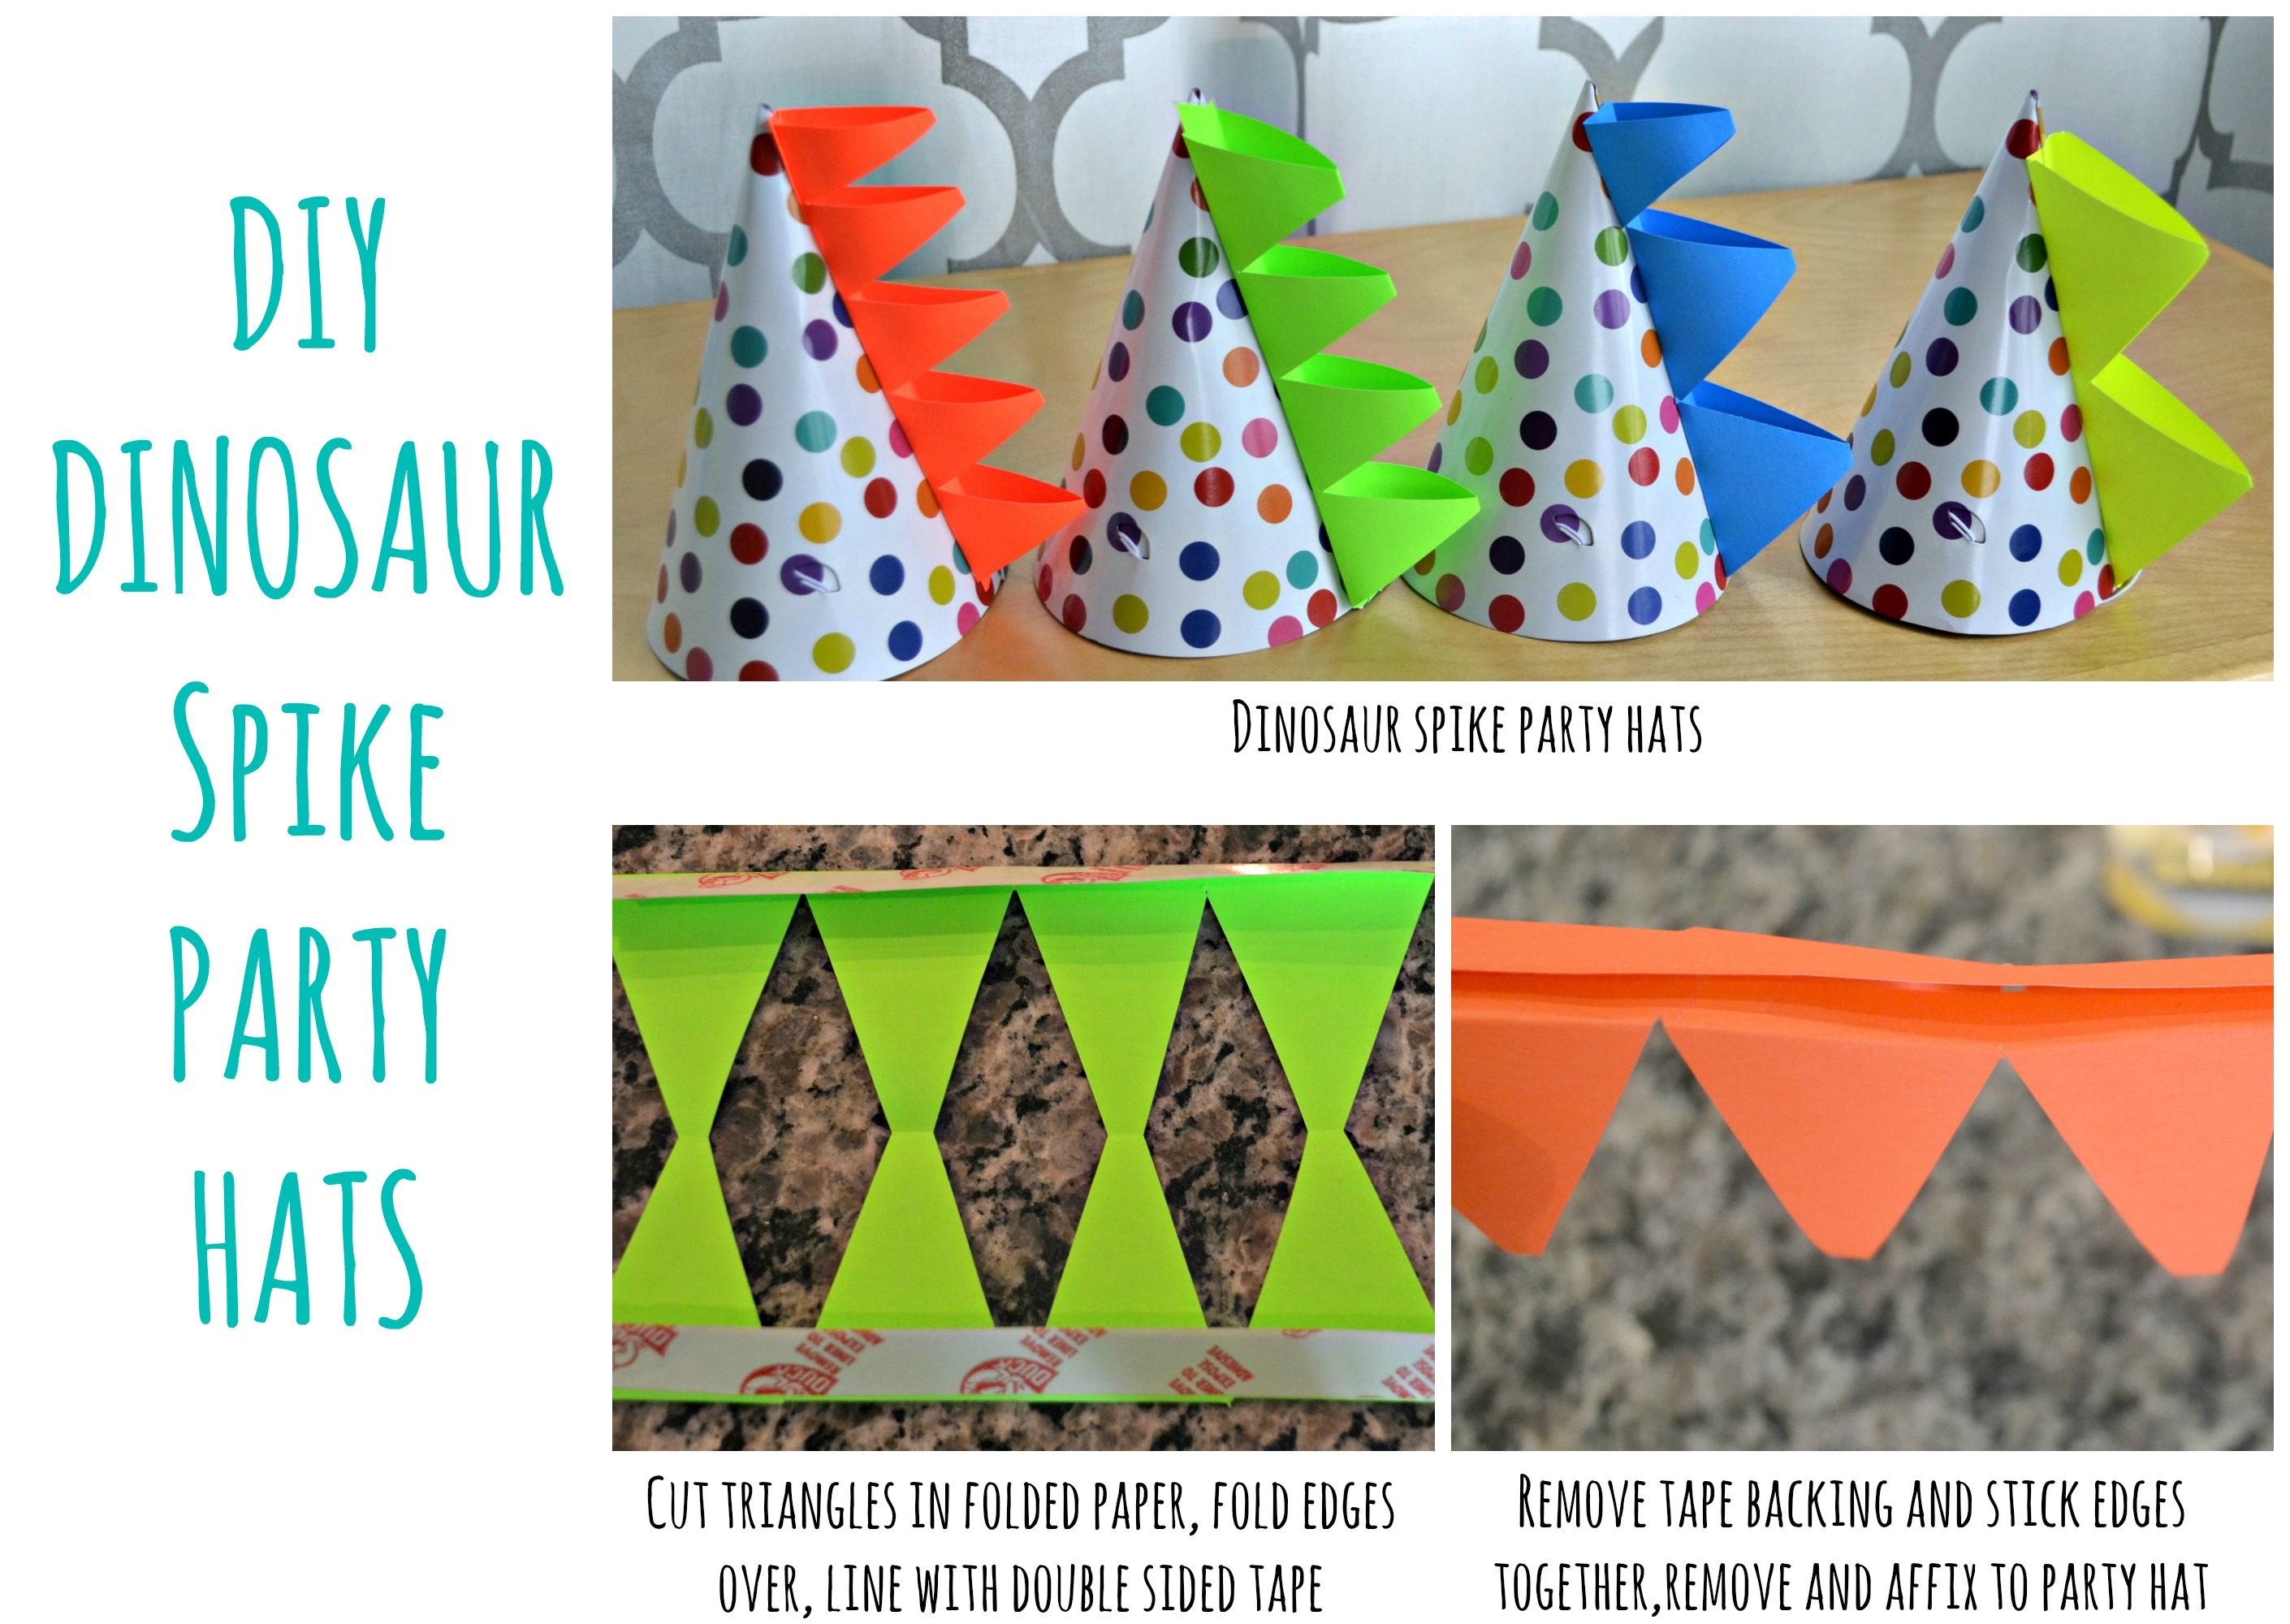 DIY Dinosaur Tails Dinosaur Spike Party Hats and Favors This